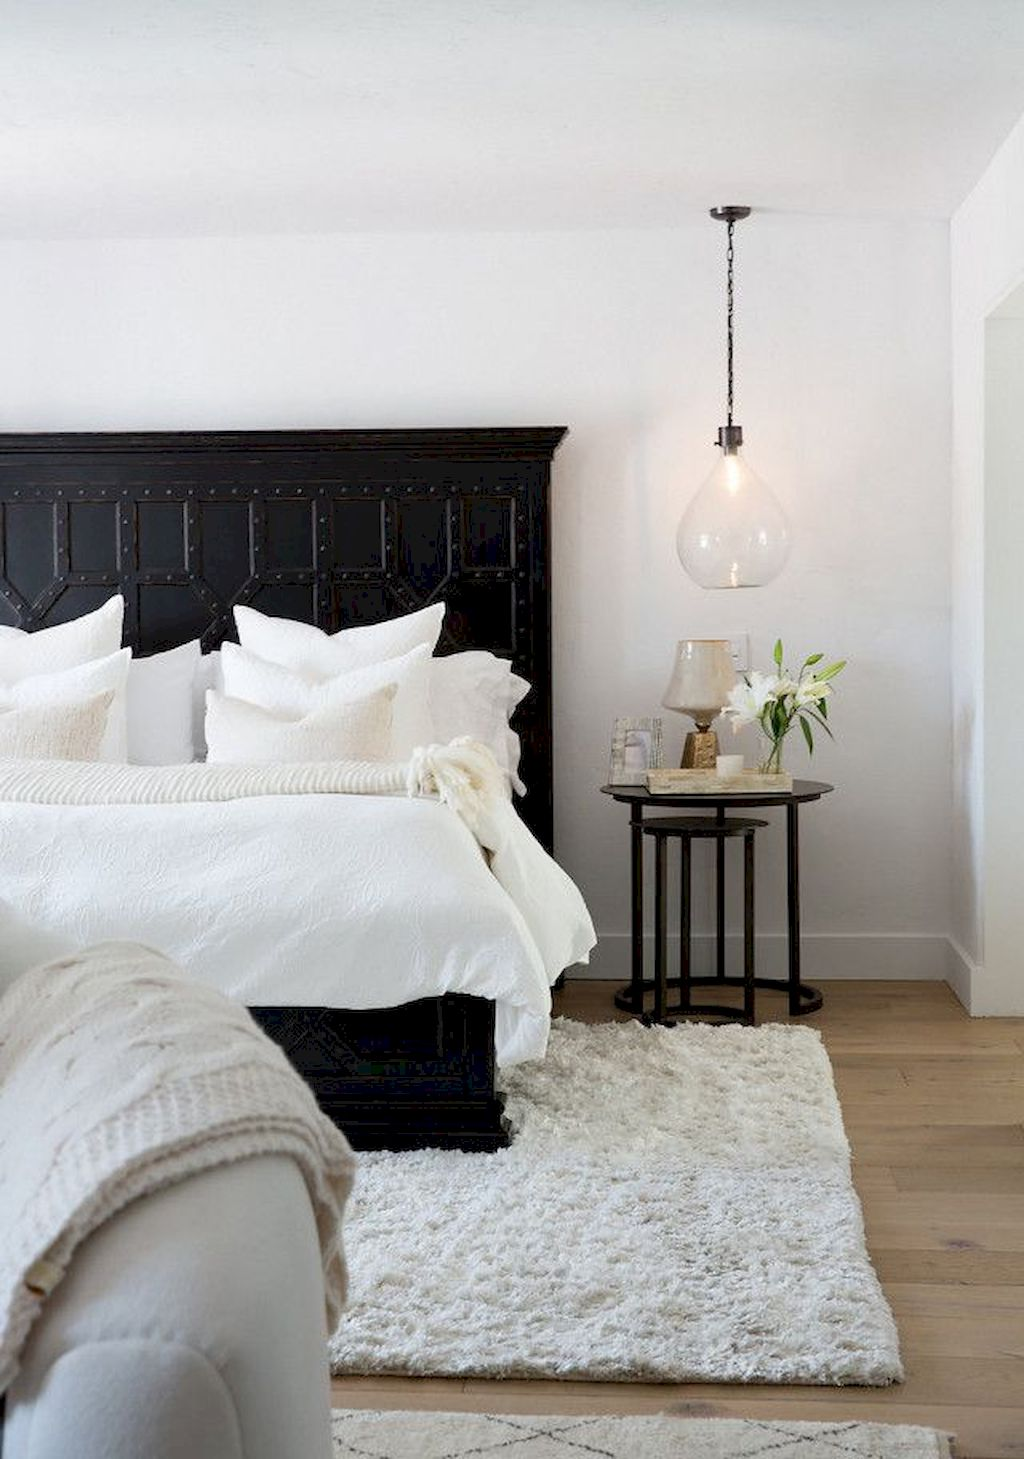 Affordable Bedroom Design With Comfortable Beds and Furniture Part 1